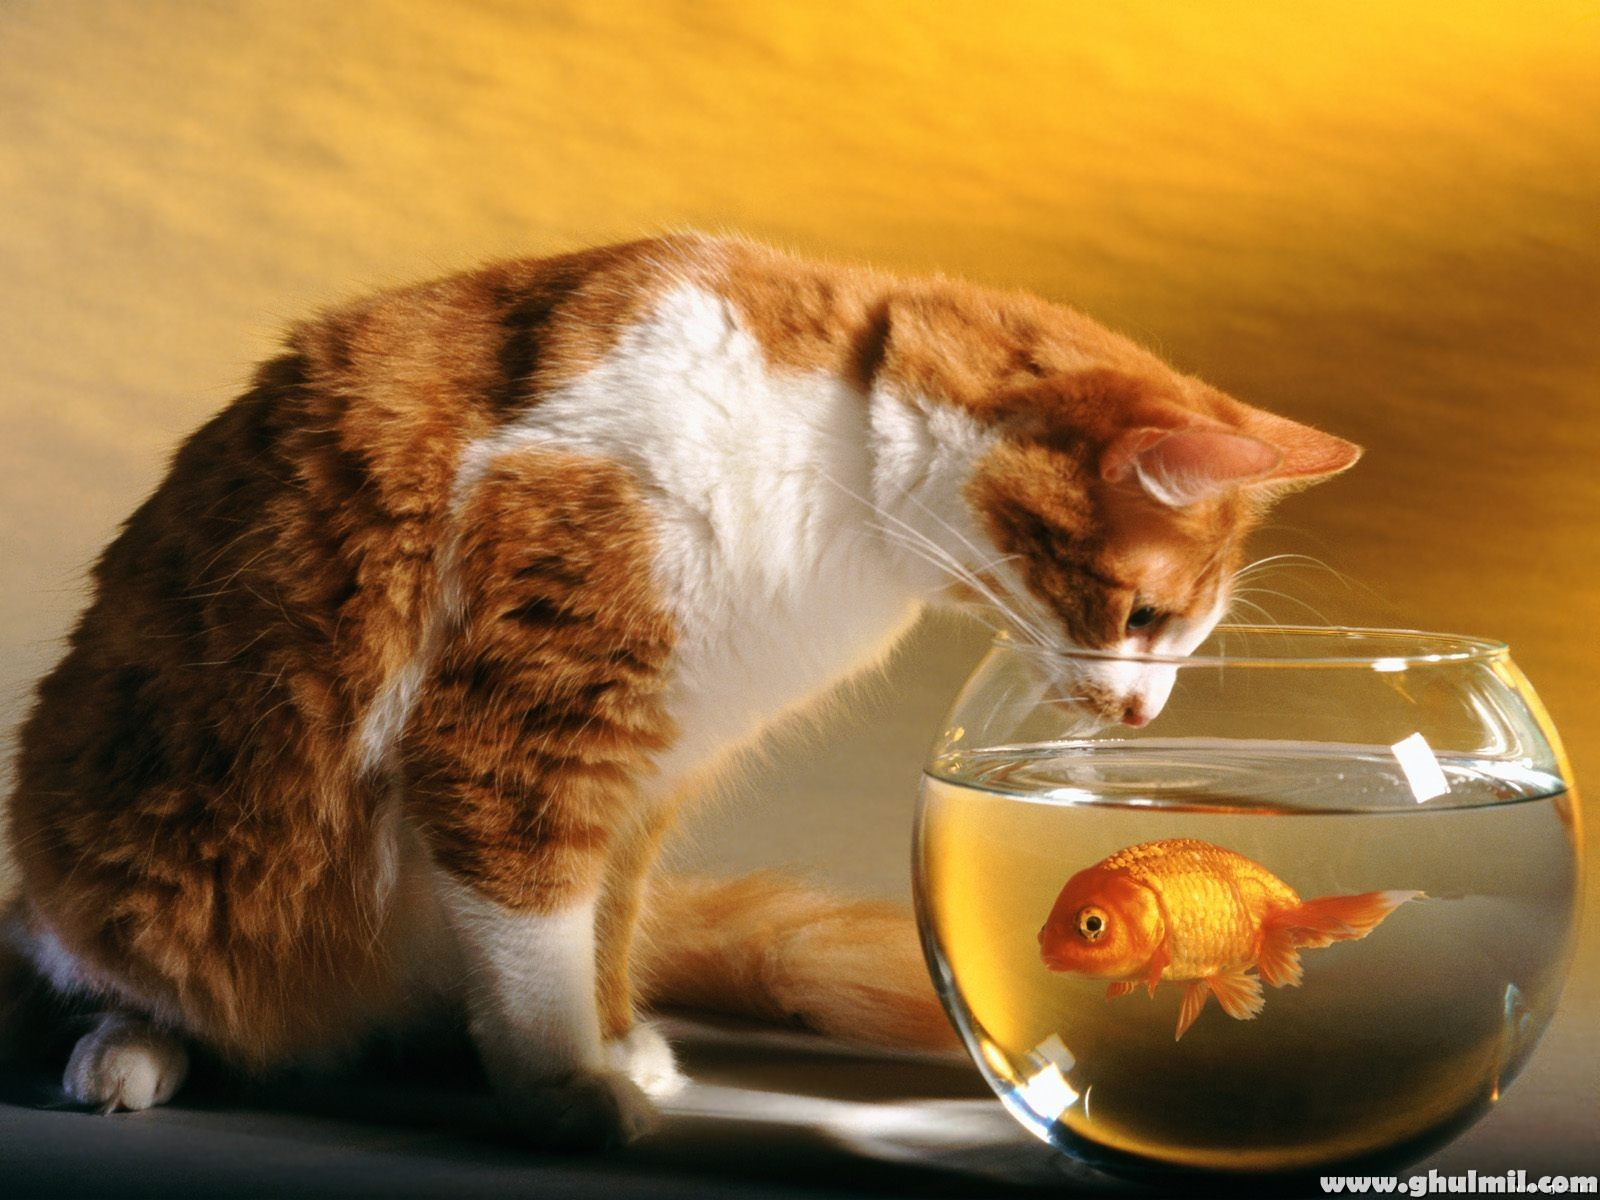 http://3.bp.blogspot.com/-BvjzLx9rWD8/TbC4x2pe_hI/AAAAAAAADNE/s8yjgxmU9Rc/s1600/cat-trying-to-catch-fish-in-a-jar-hd-wallpaper.jpg